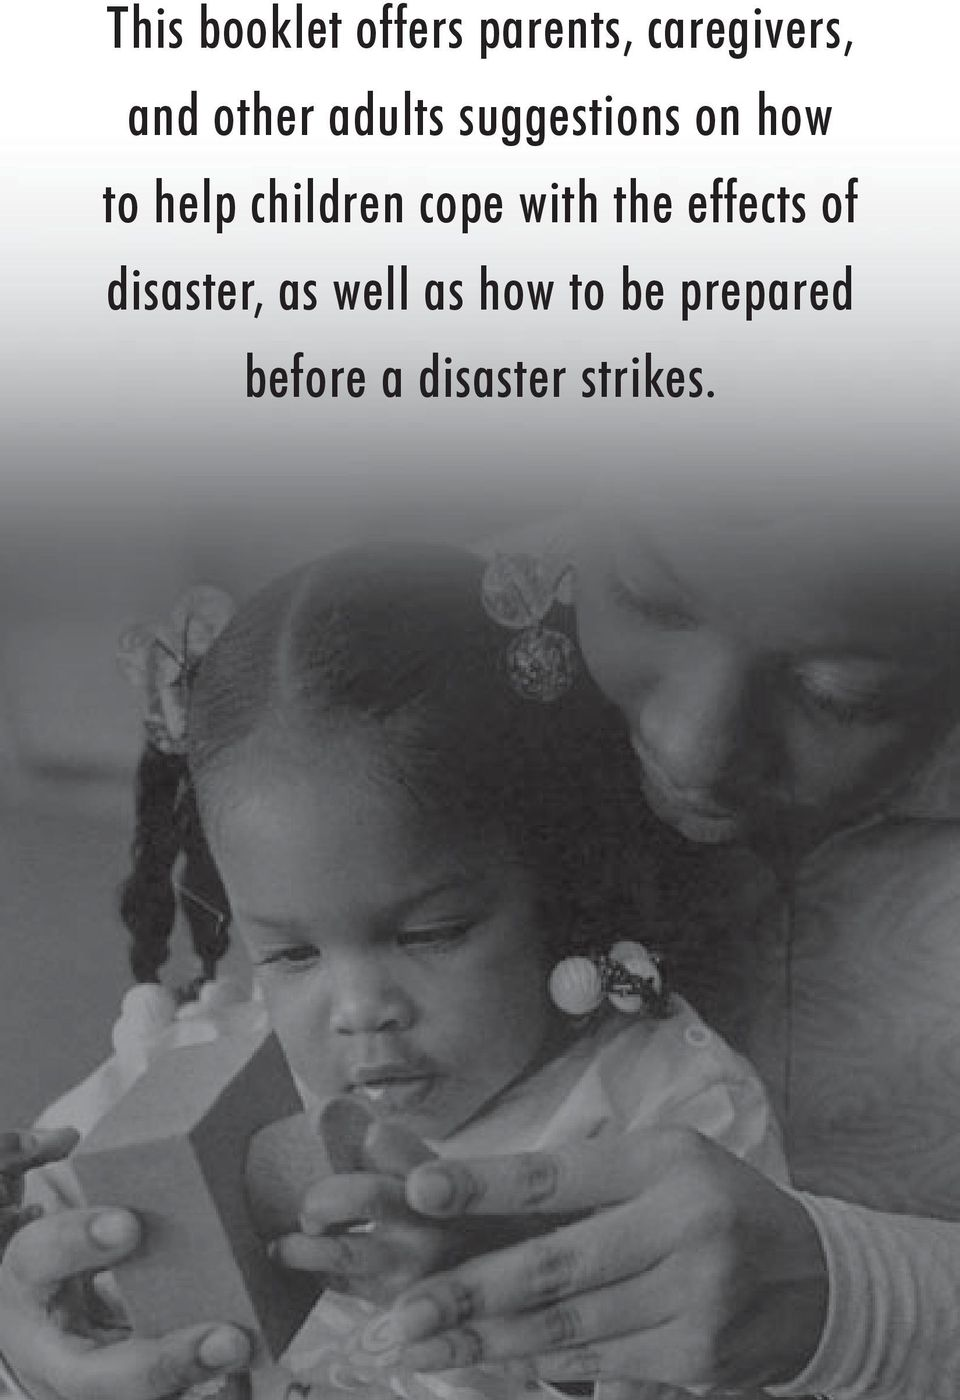 children cope with the effects of disaster, as